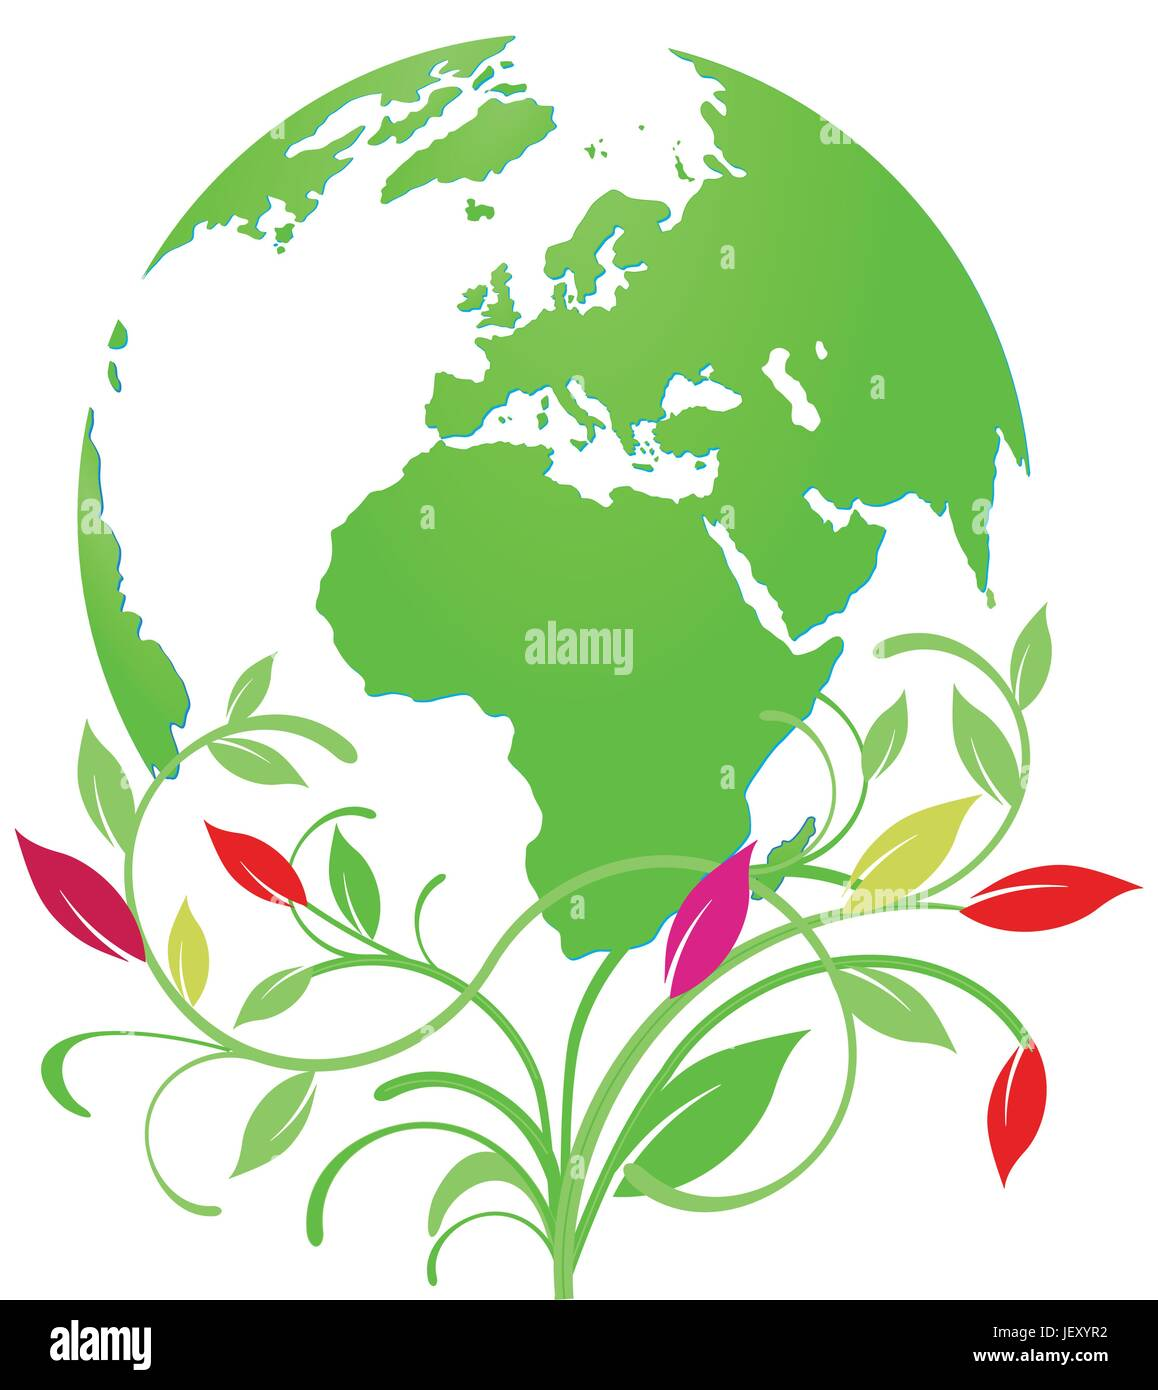 travel, health, environment, enviroment, science, green, asia, tourism, africa, - Stock Vector